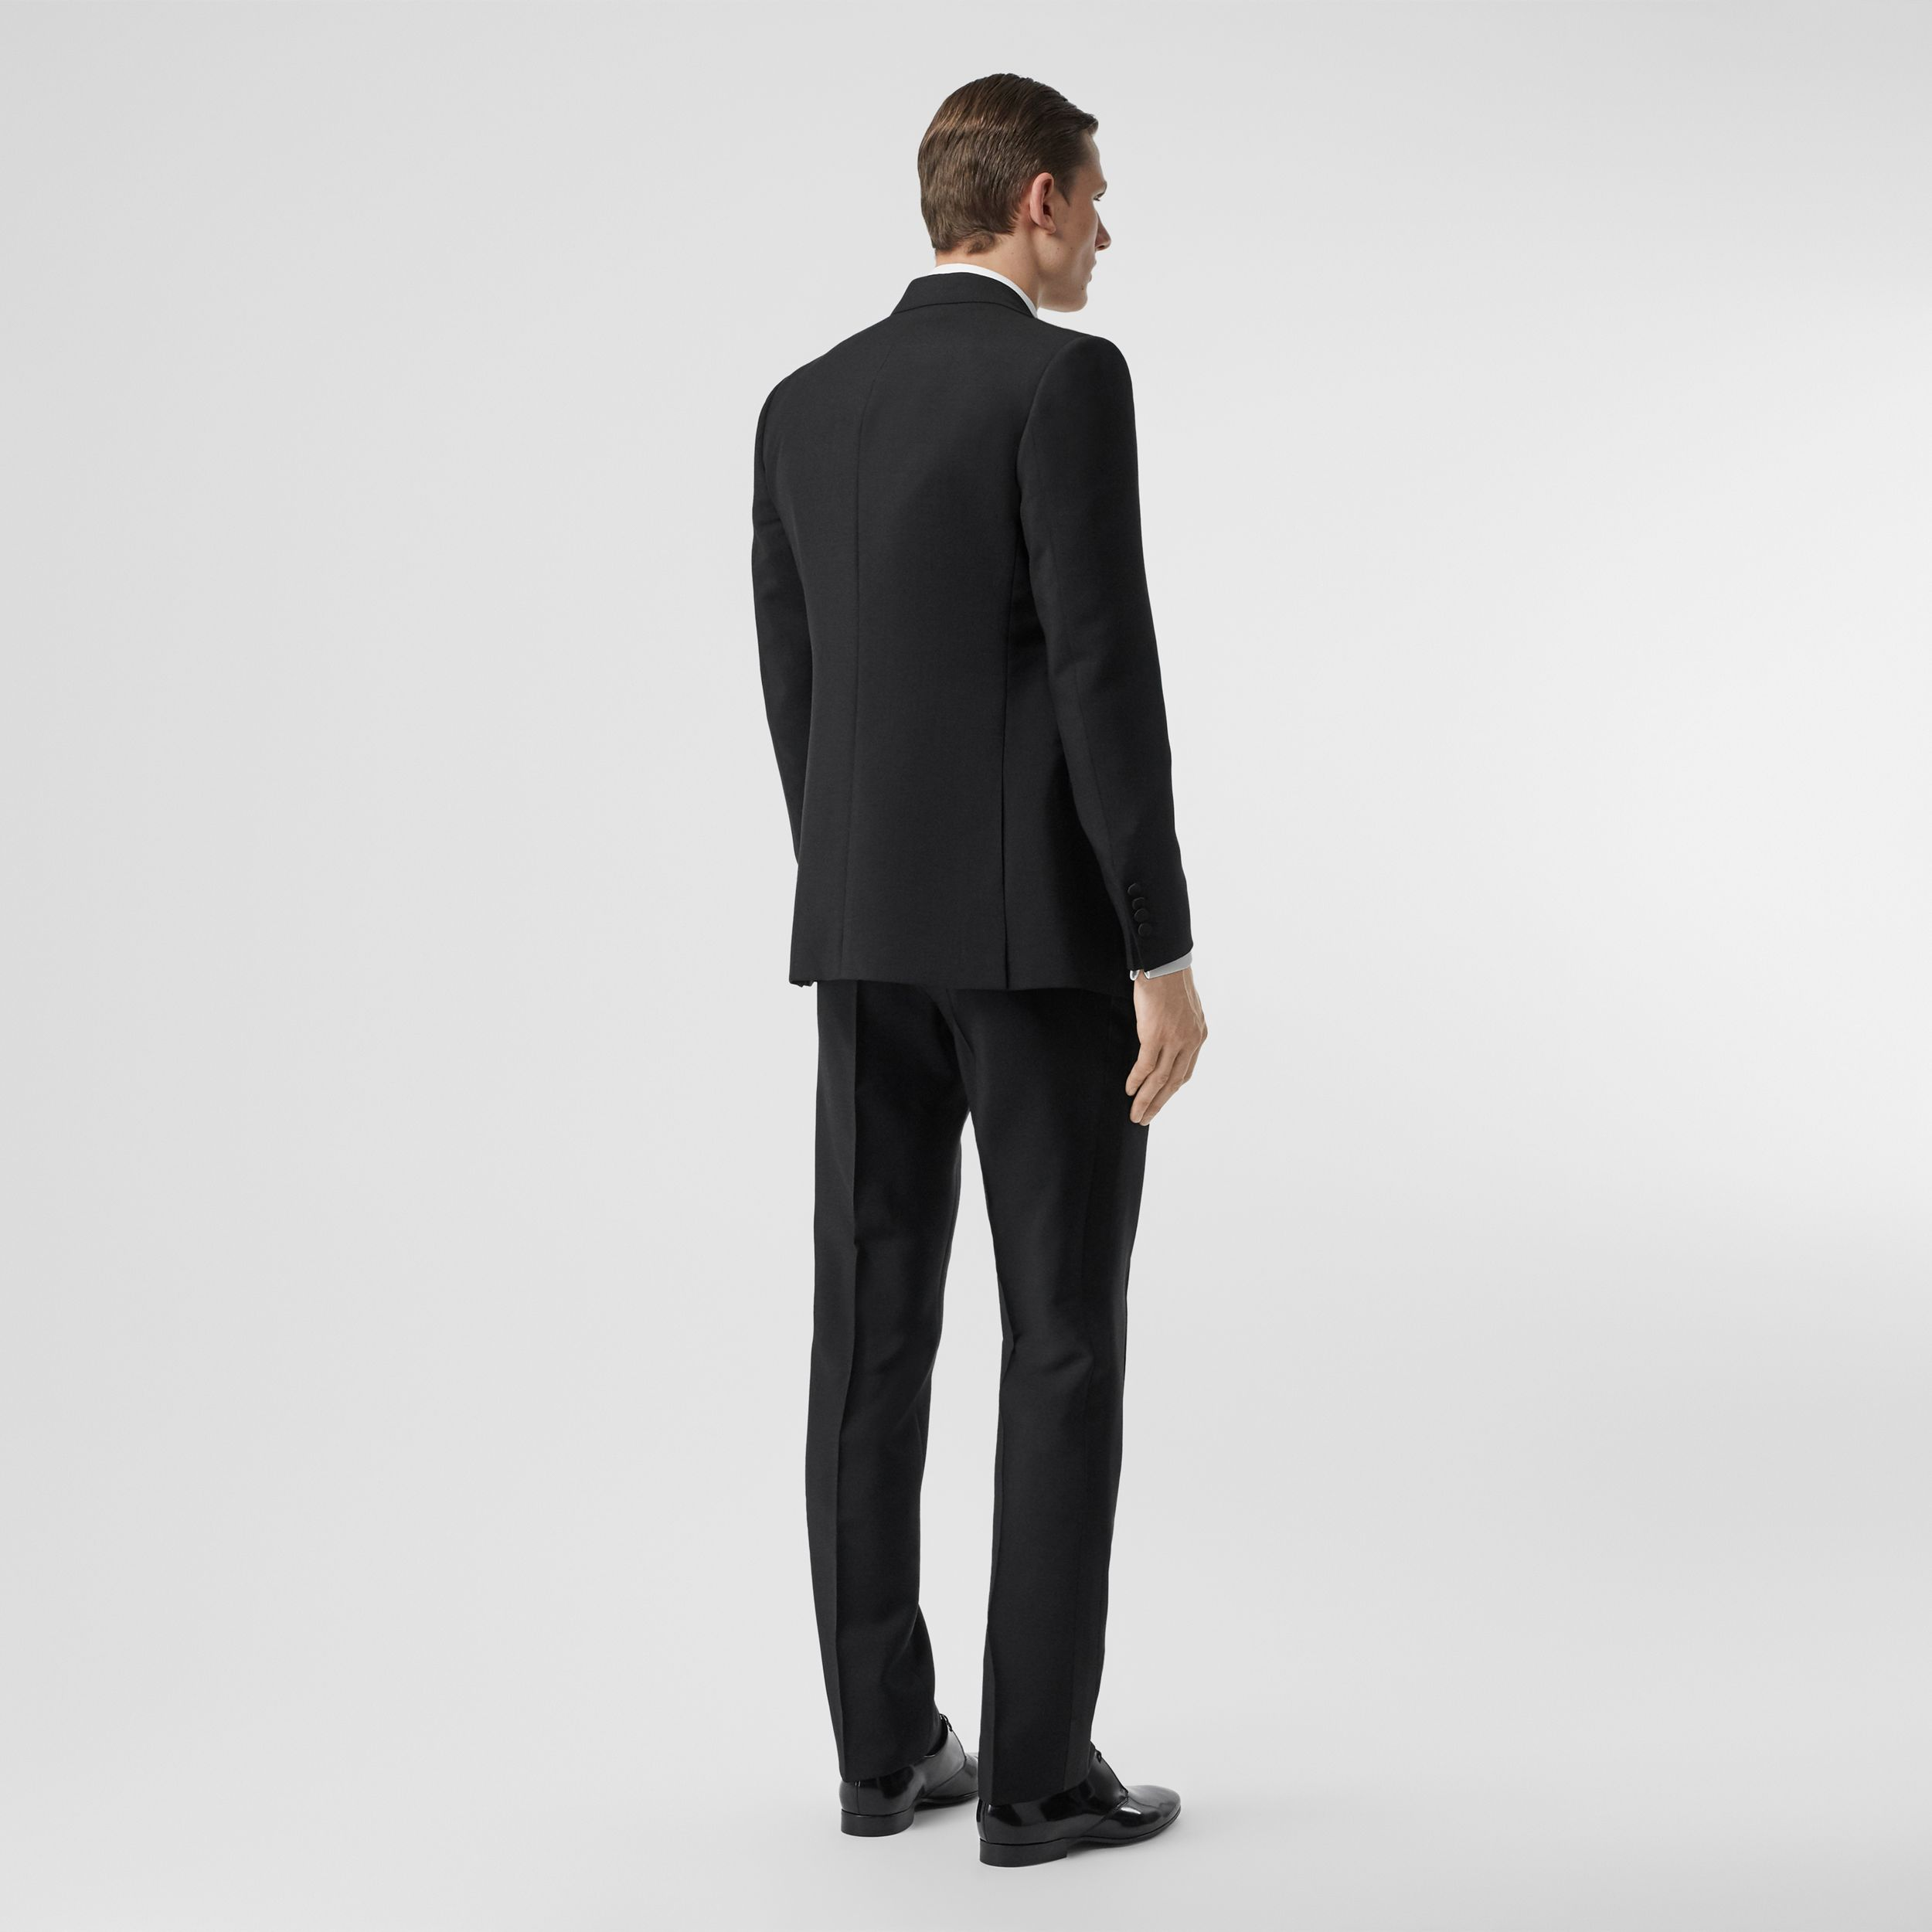 English Fit Mohair Wool Tuxedo in Black - Men | Burberry Hong Kong S.A.R. - 3